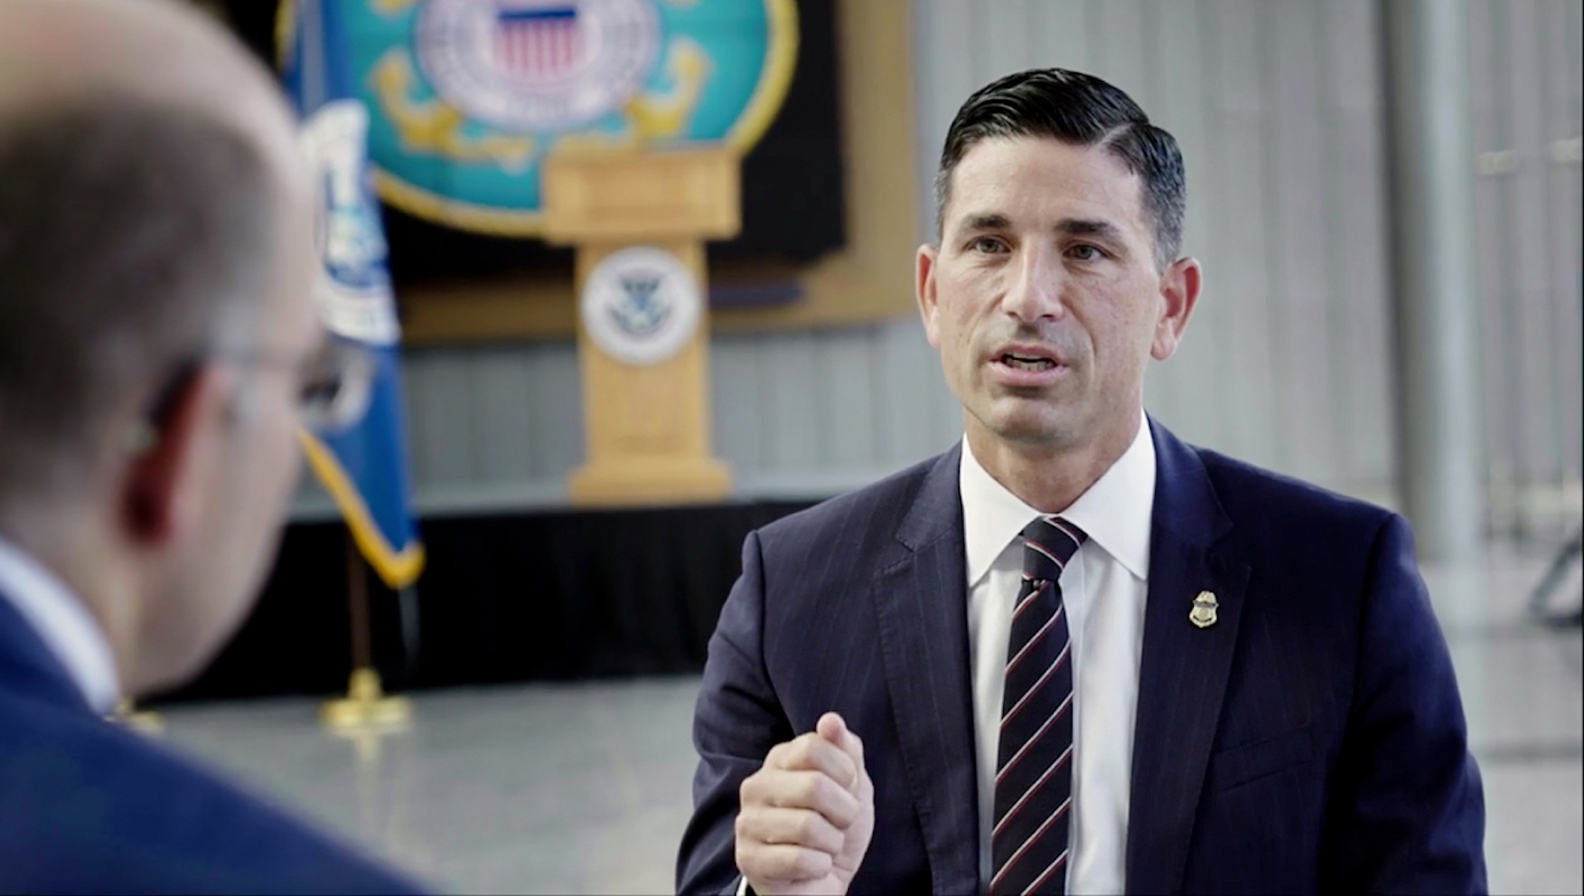 Chad Wolf, Acting Secretary of Homeland Security